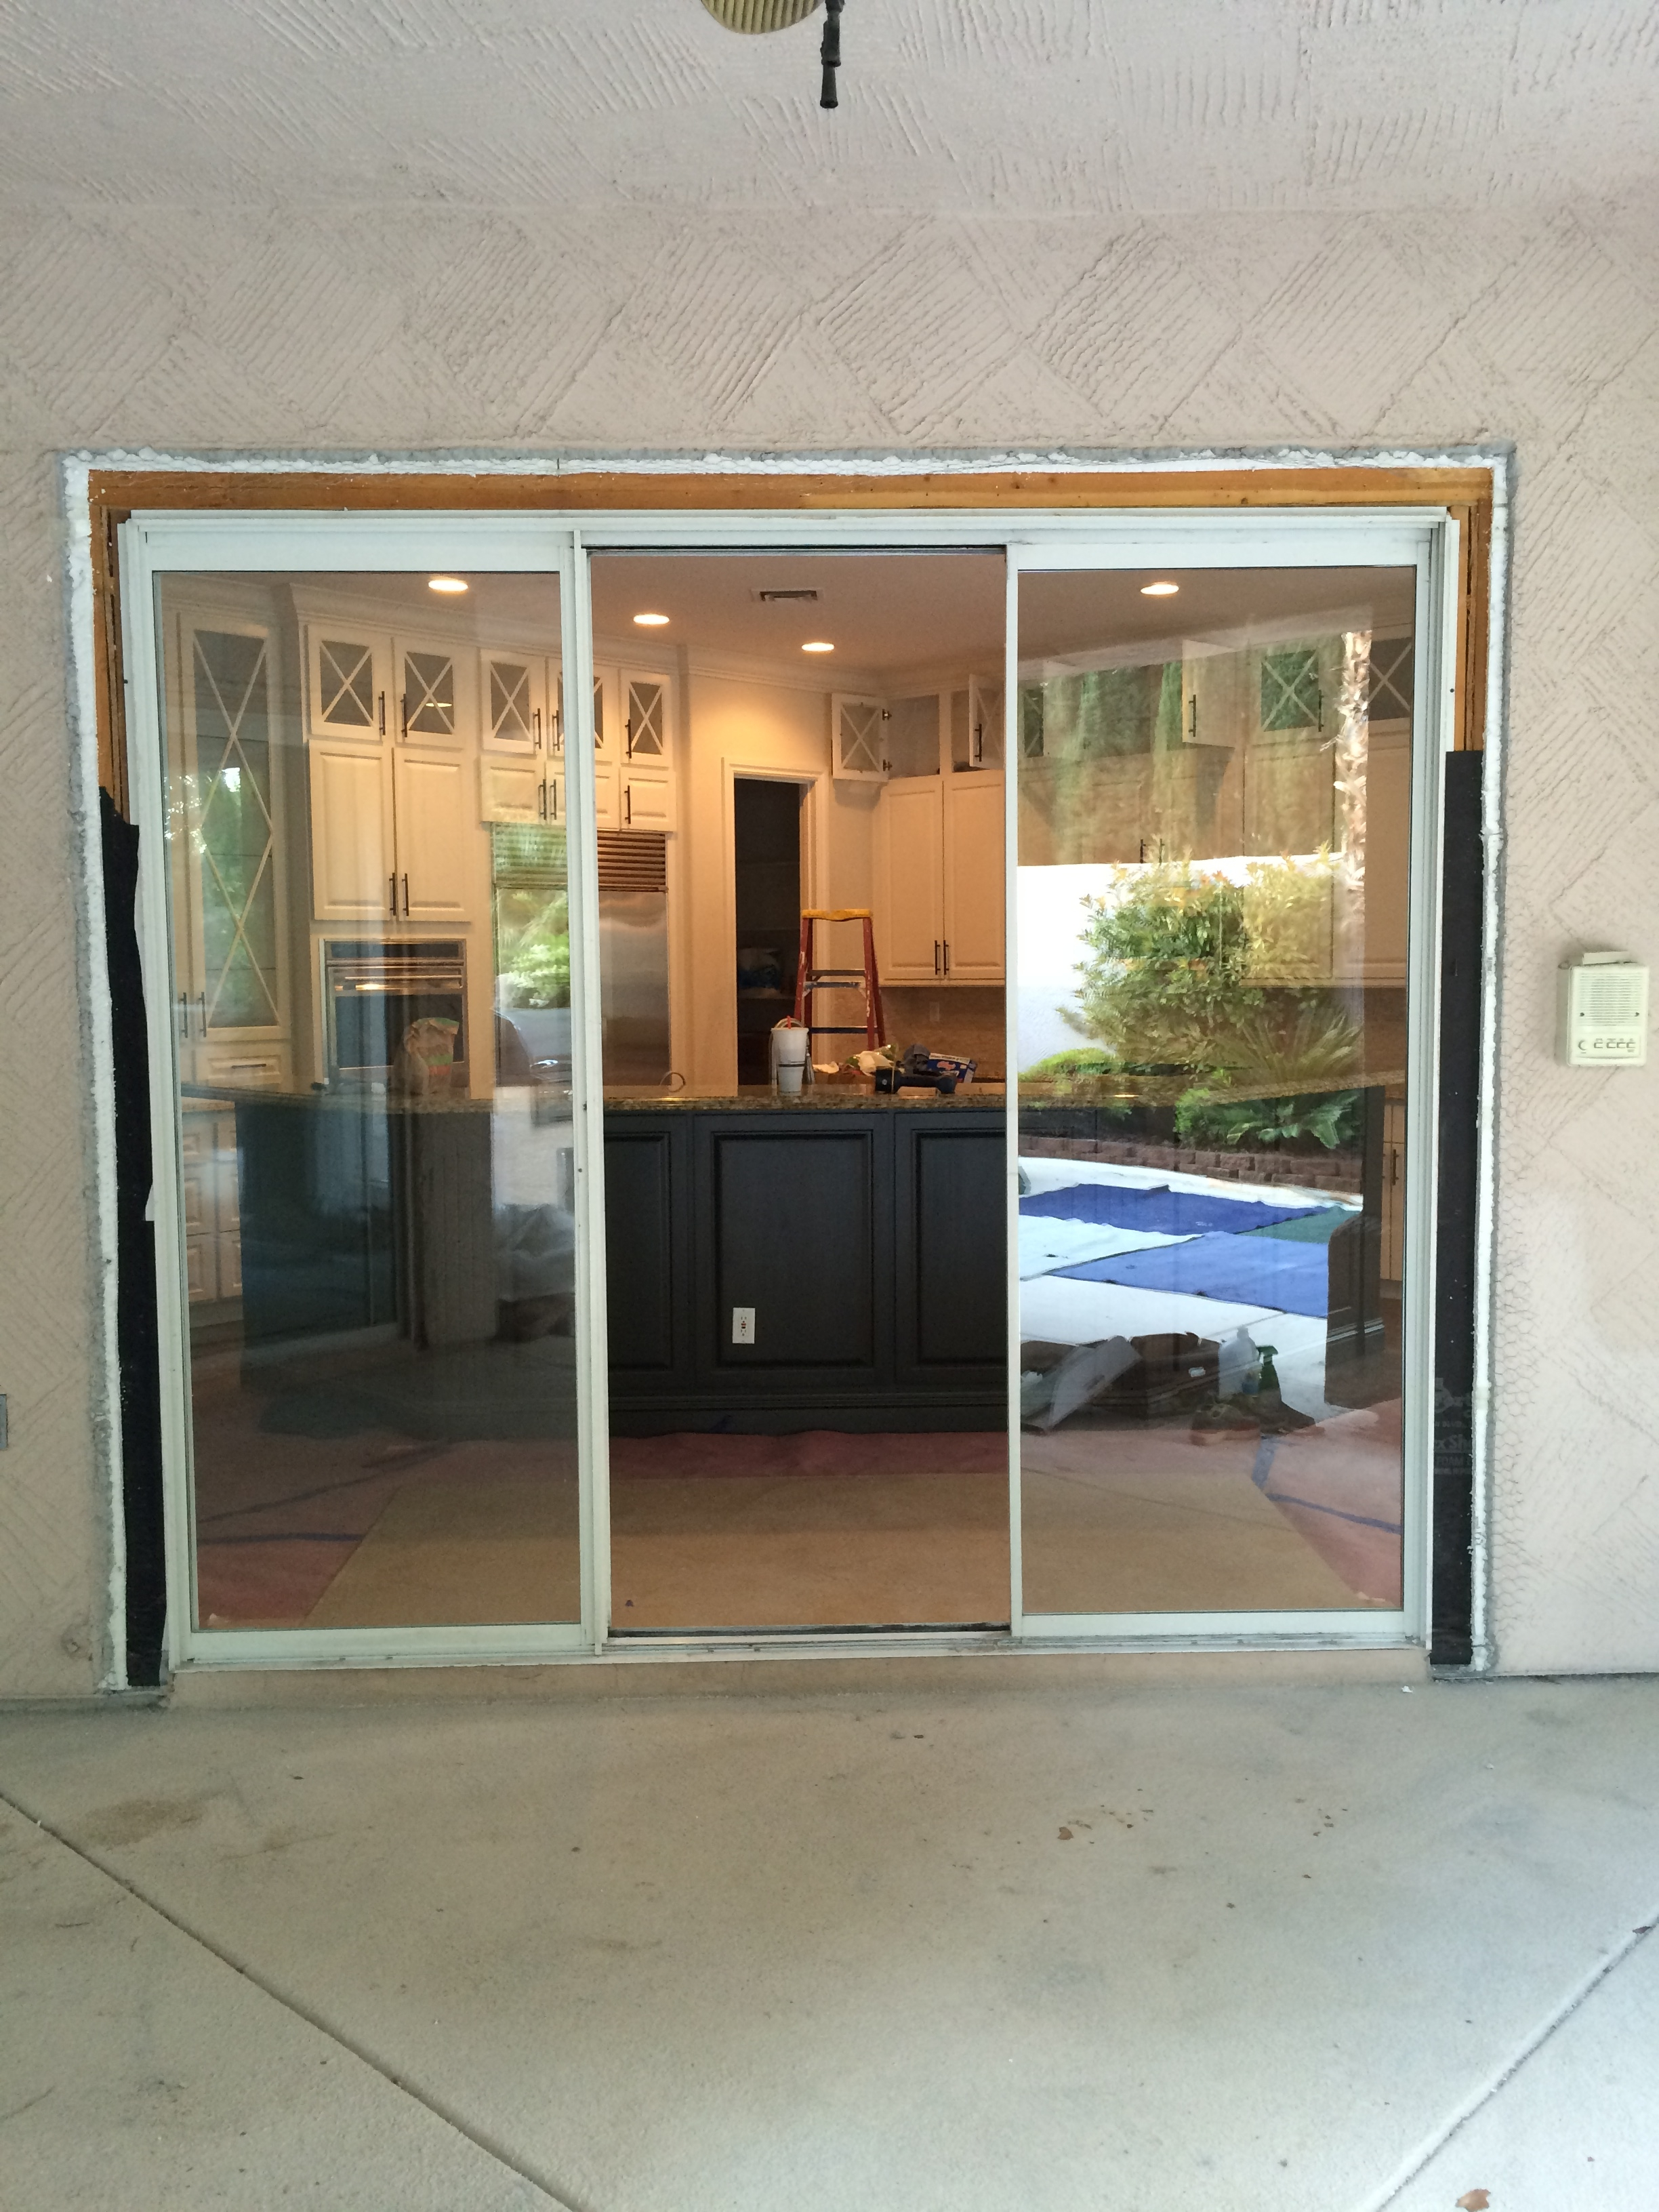 9 Foot Tall Sliding Glass Doorsthree openings 9 8 and 5 foot wide 8 foot tall we replaced